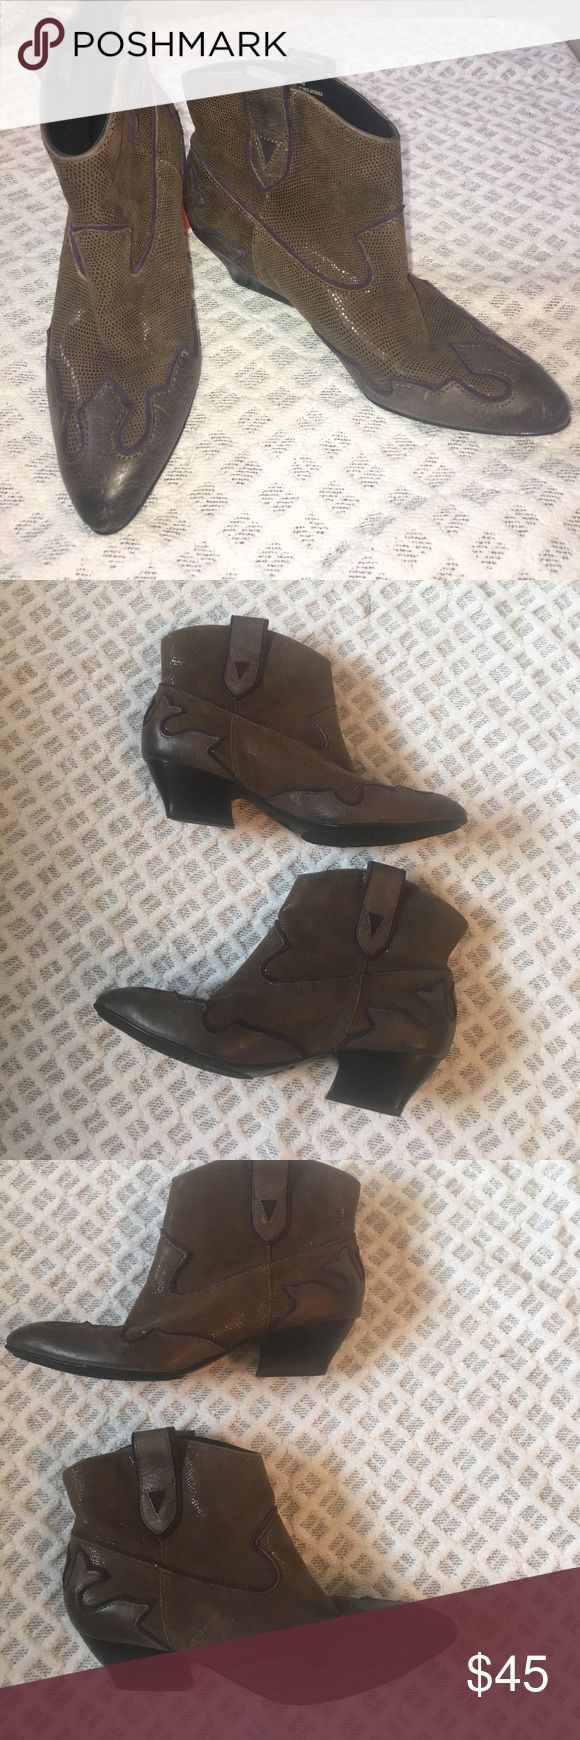 "Isola Leather Cowboy Booties Gorgeous Isola booties- great used condition!  Heel height is approximately 2"".  Cushy interior for extra comfort.  Supersoft leather outer.  Rubber embossed sole for traction. Hard to capture in pictures just how beautiful these are!  Brown with purple accenting. Isola Shoes Ankle Boots & Booties"